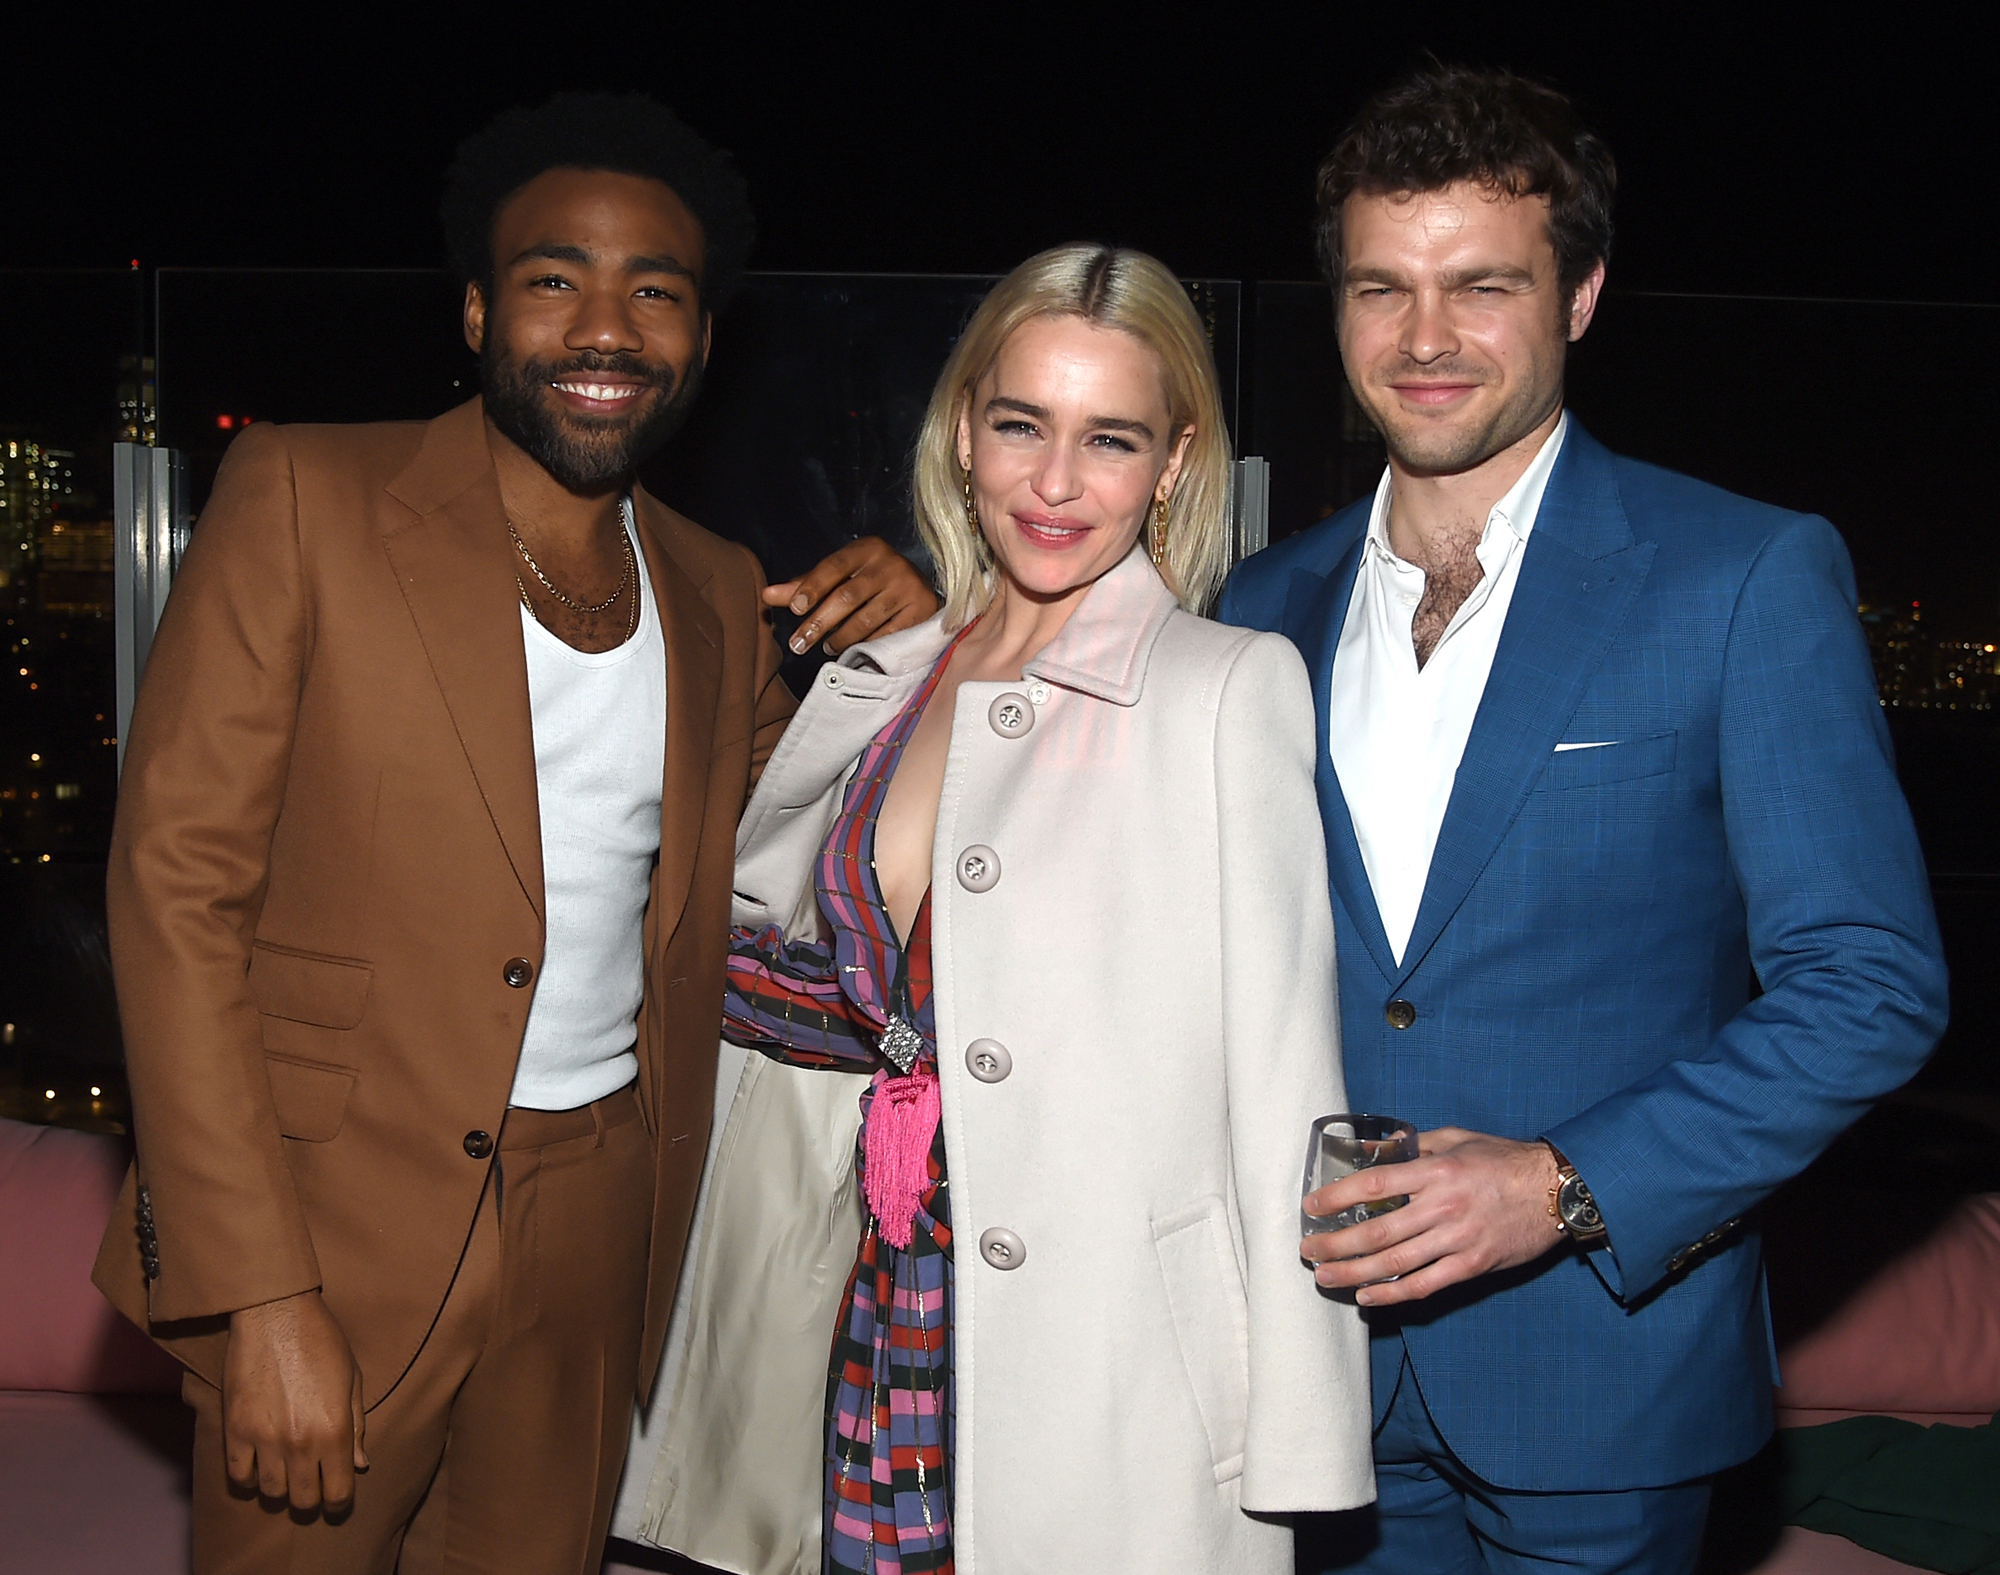 Donald Glover, Emilia Clarke, and Alden Ehrenreich